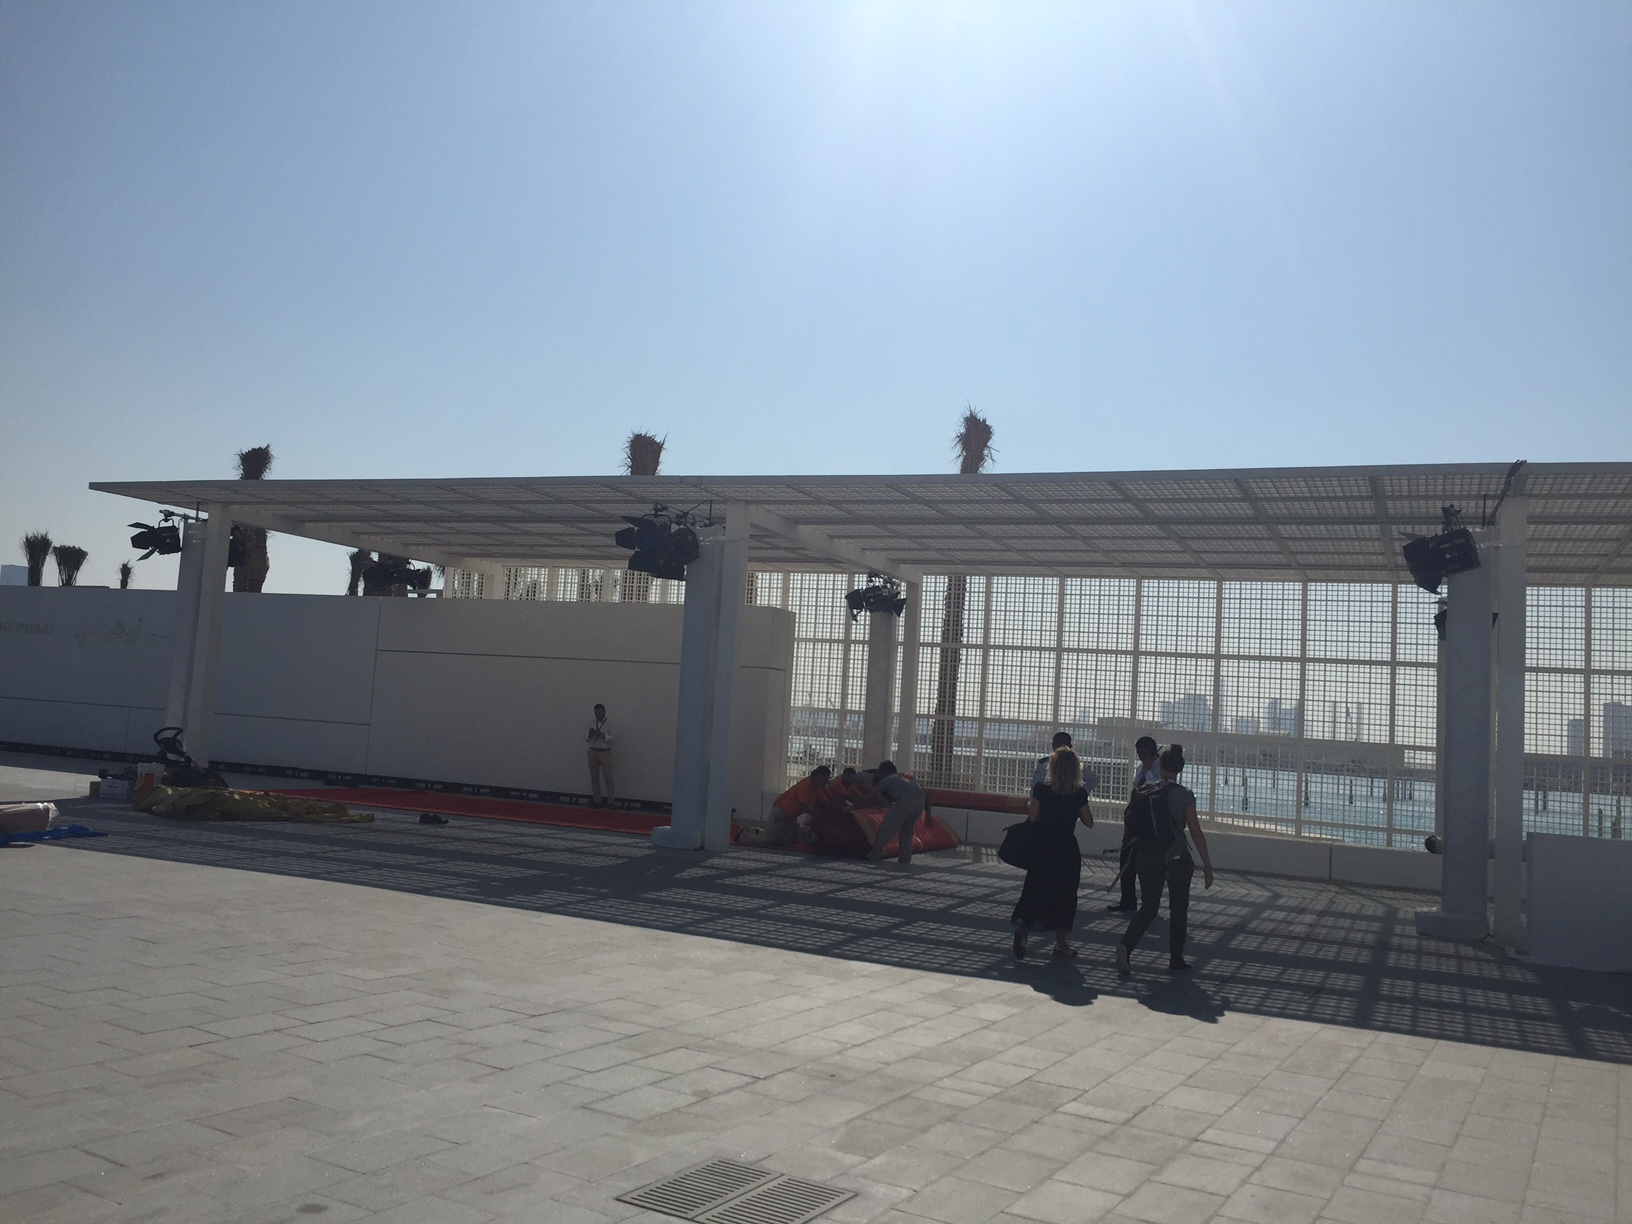 1.  Watching workers rolling out the red carpet on 6 November 2017, ahead of the Louvre Abu Dhabi opening events.